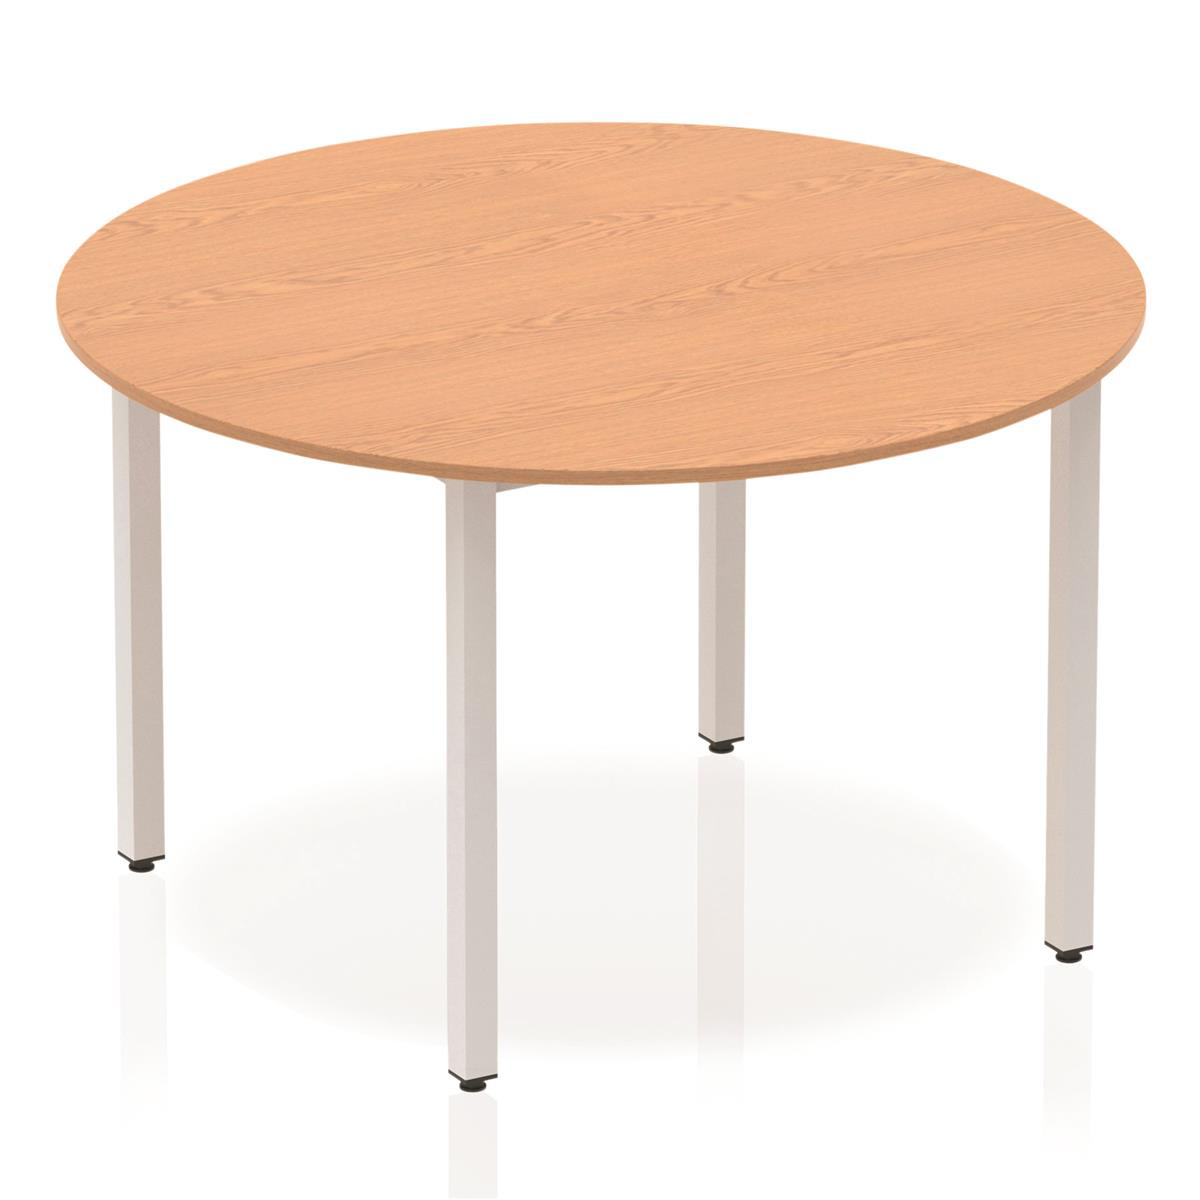 Trexus Circular Box Frame Silver Leg Table 1200mm Oak Ref BF00198